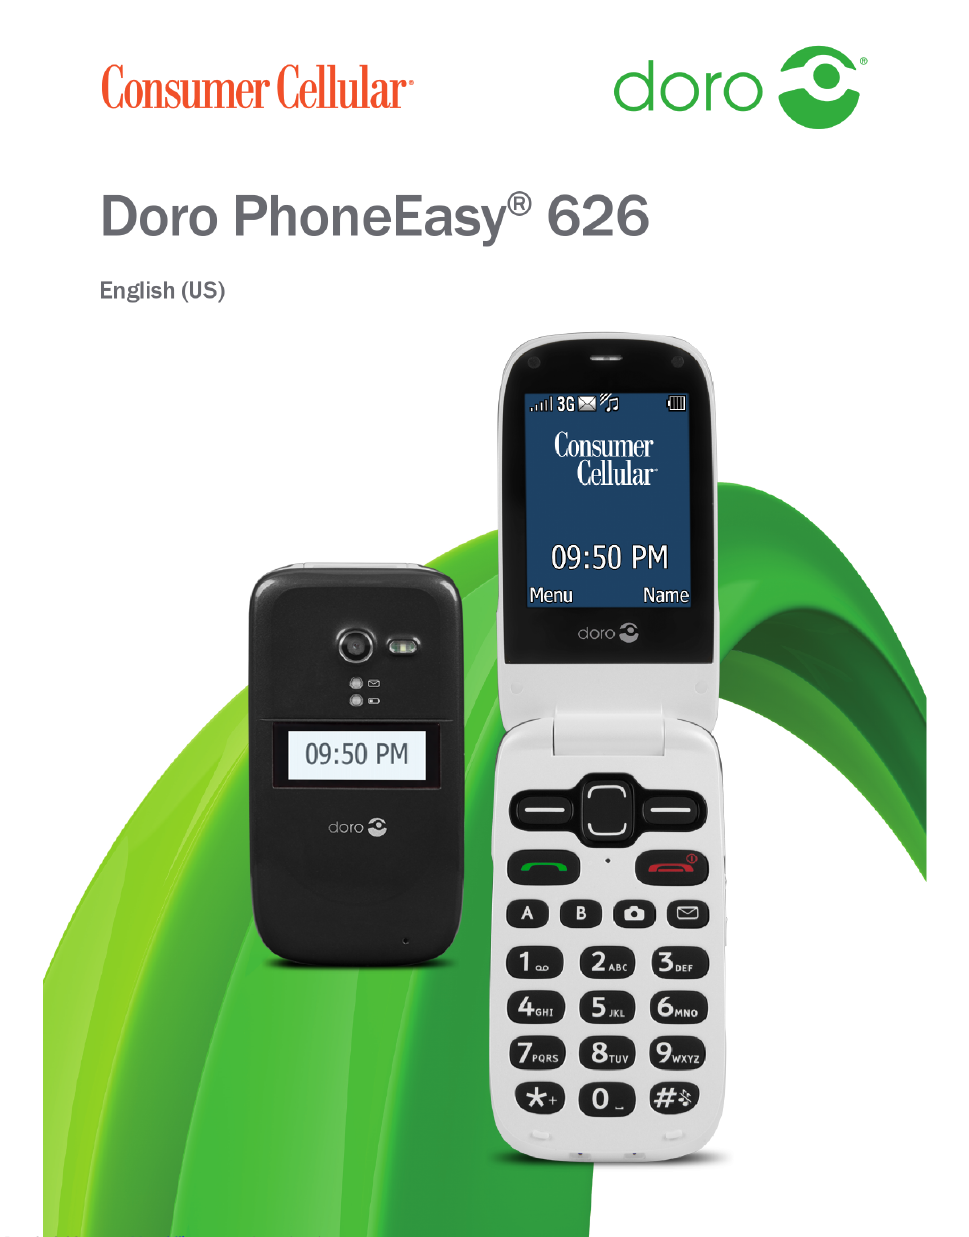 lg vn150 manual ebook Array - doro phoneeasy 626 manual free pdf download  64 pages rh manualagent com